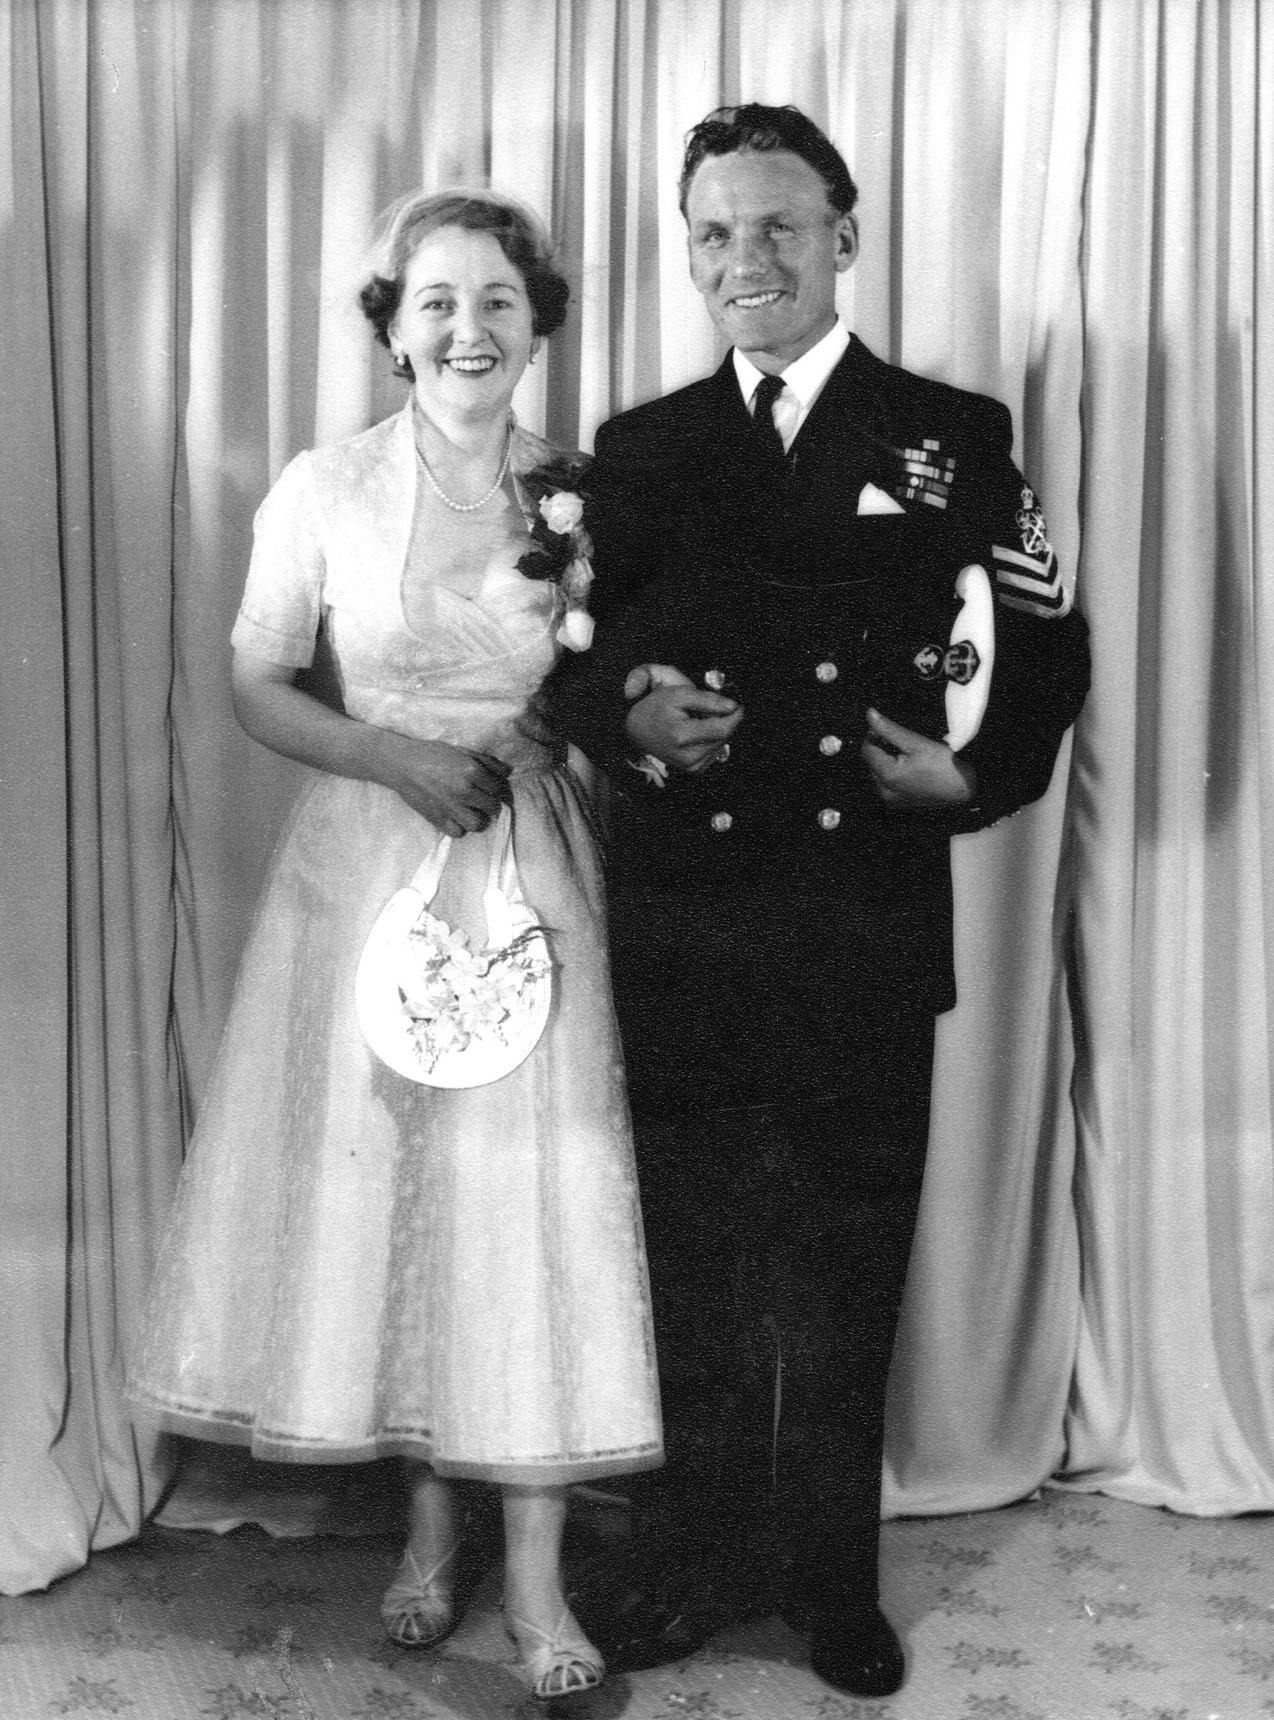 Sailor And Wife On Wedding Day, early 1950s